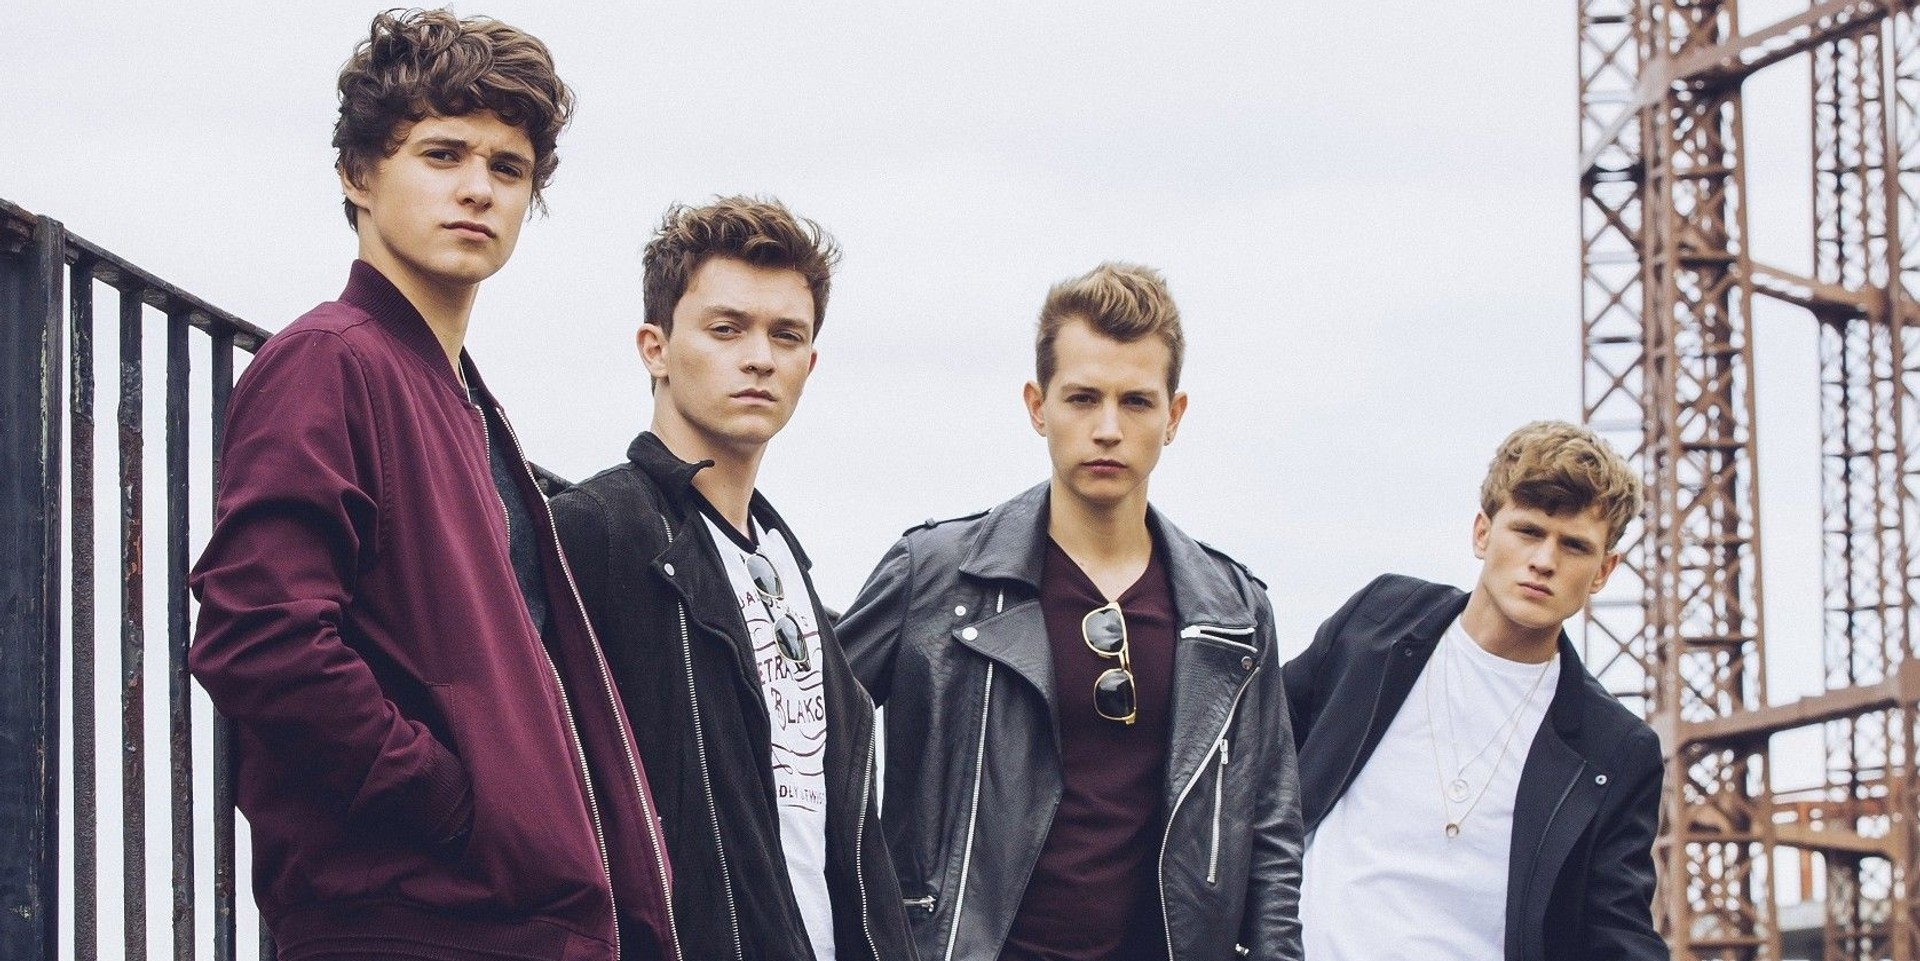 The Vamps return to Manila for an intimate acoustic show